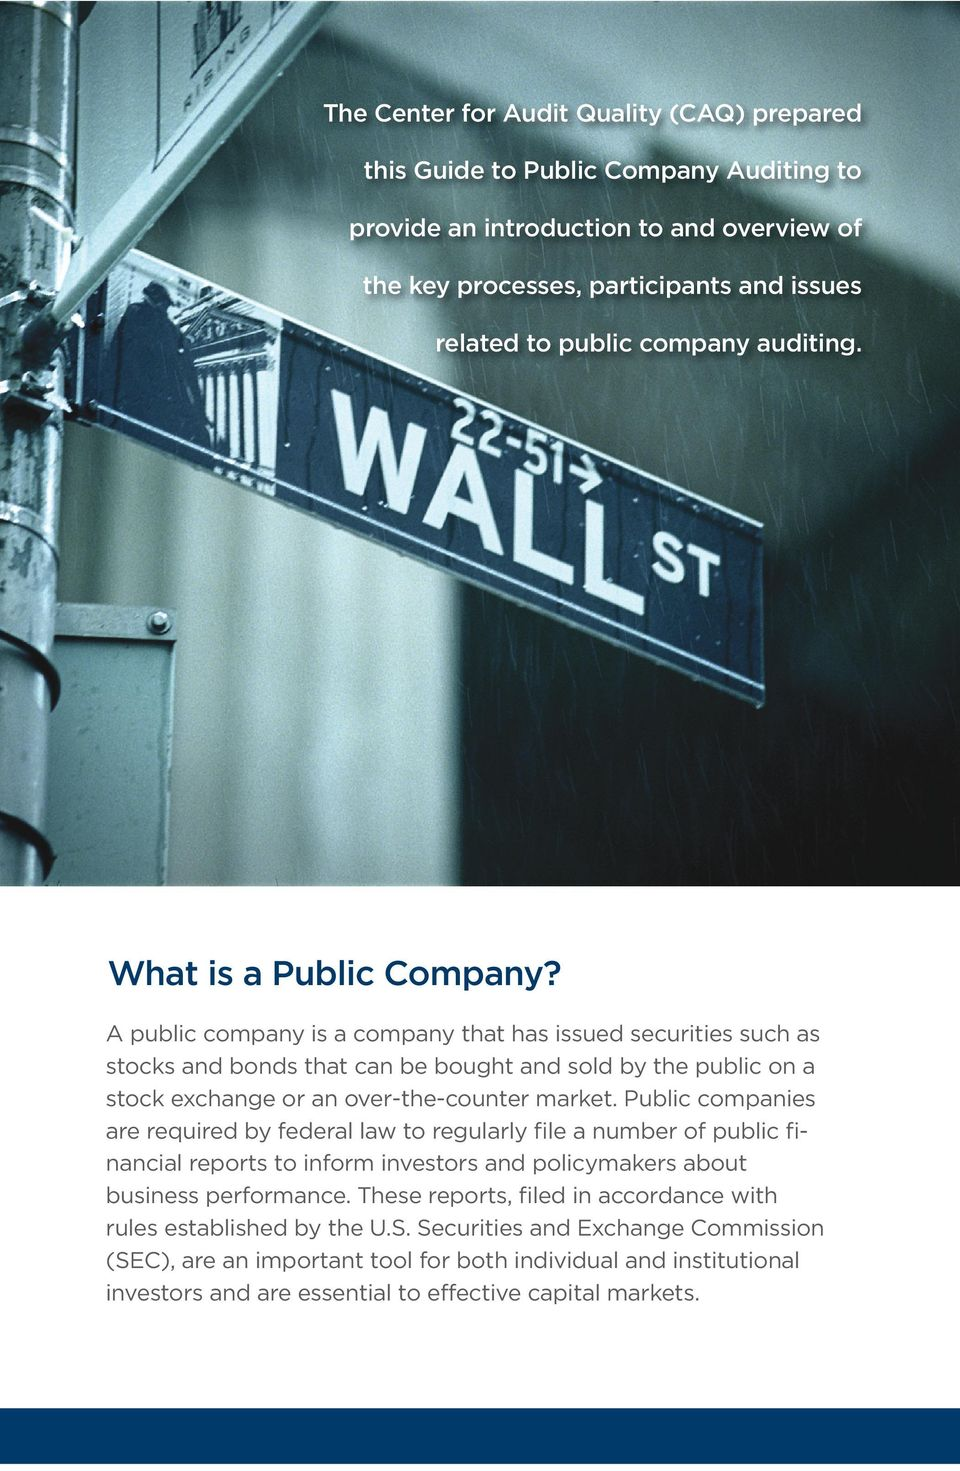 A public company is a company that has issued securities such as stocks and bonds that can be bought and sold by the public on a stock exchange or an over-the-counter market.